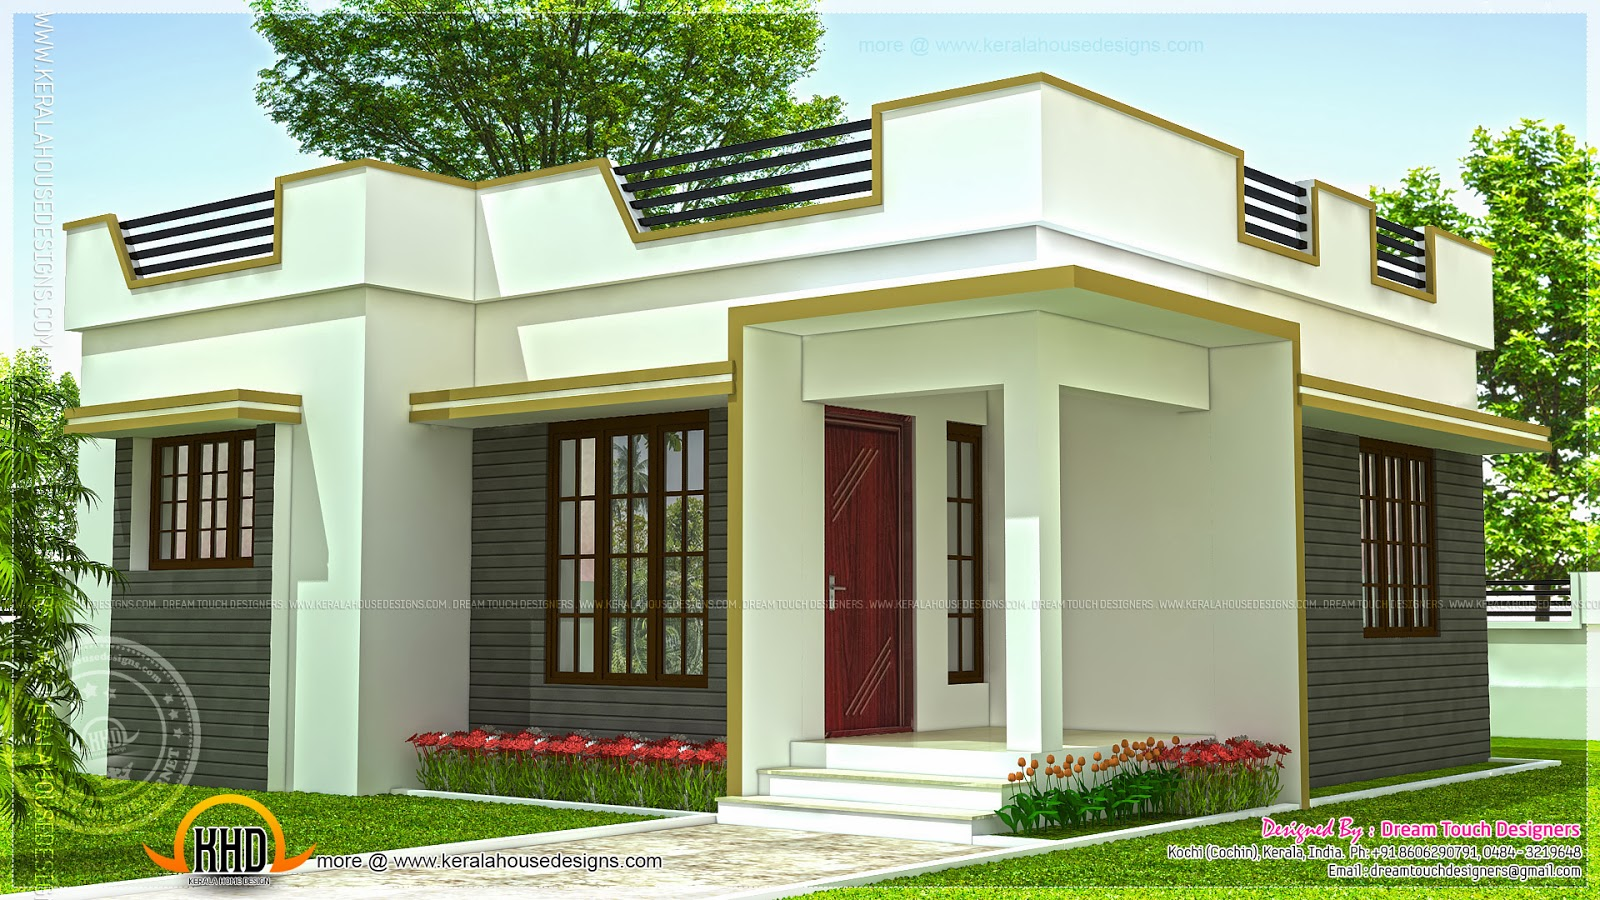 35 small and simple but beautiful house with roof deck for Small house deck designs